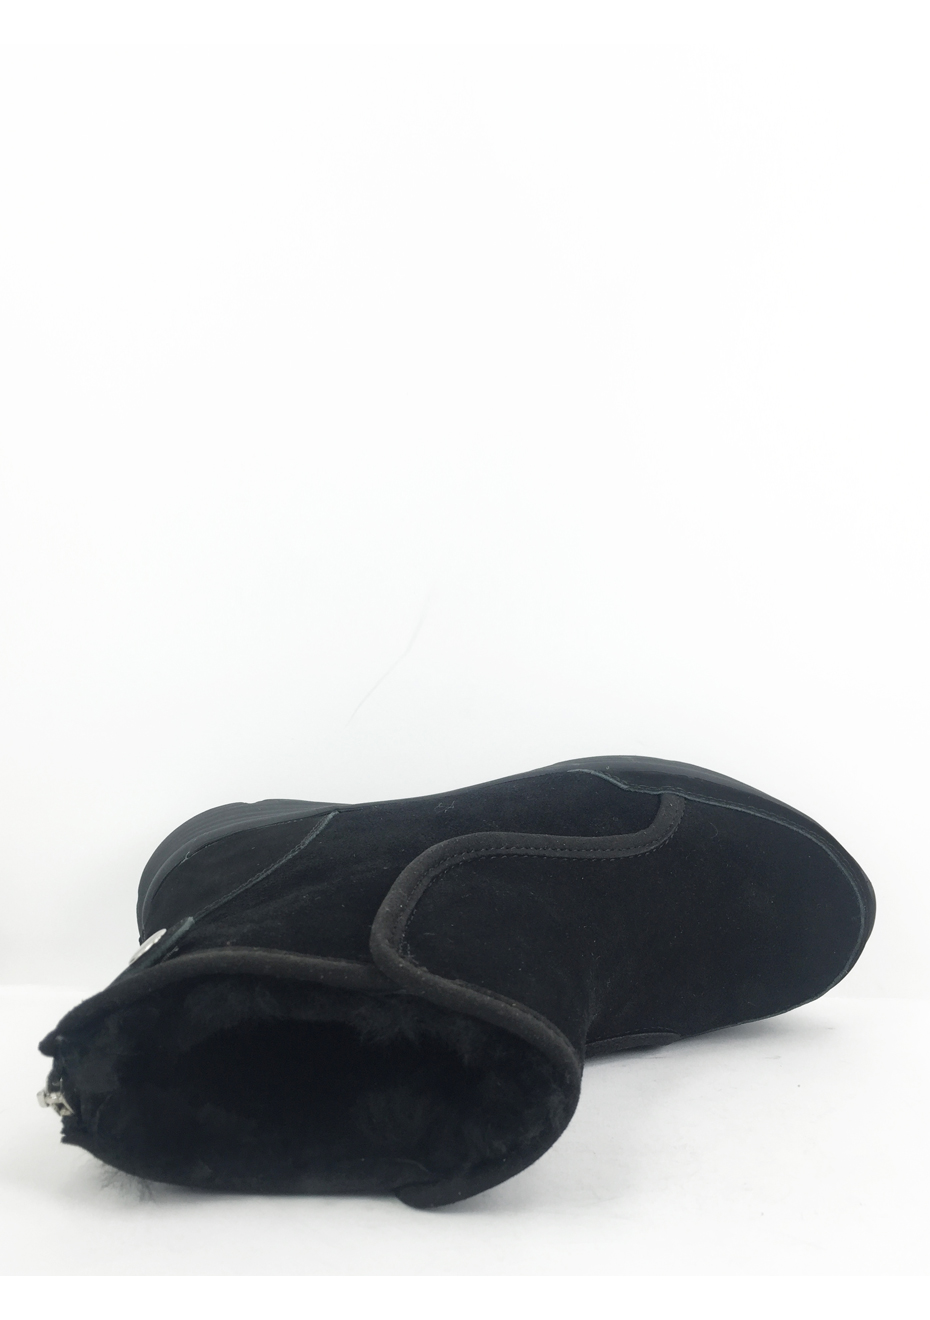 ugg womens black flat nz